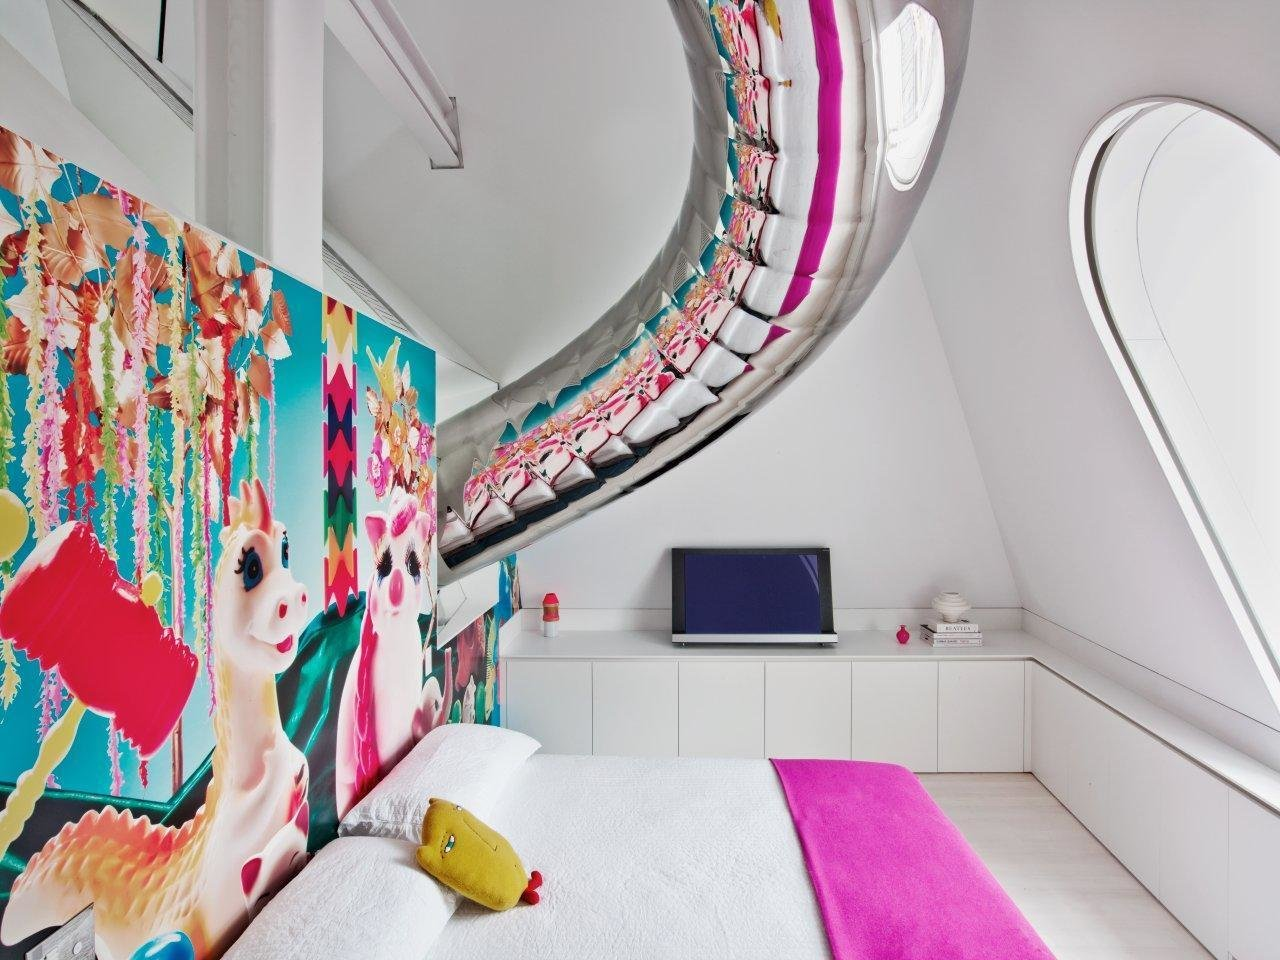 Best 10 Design Elements For A Chic Modern Nursery Hgtv S Decorating Design Blog Hgtv With Pictures